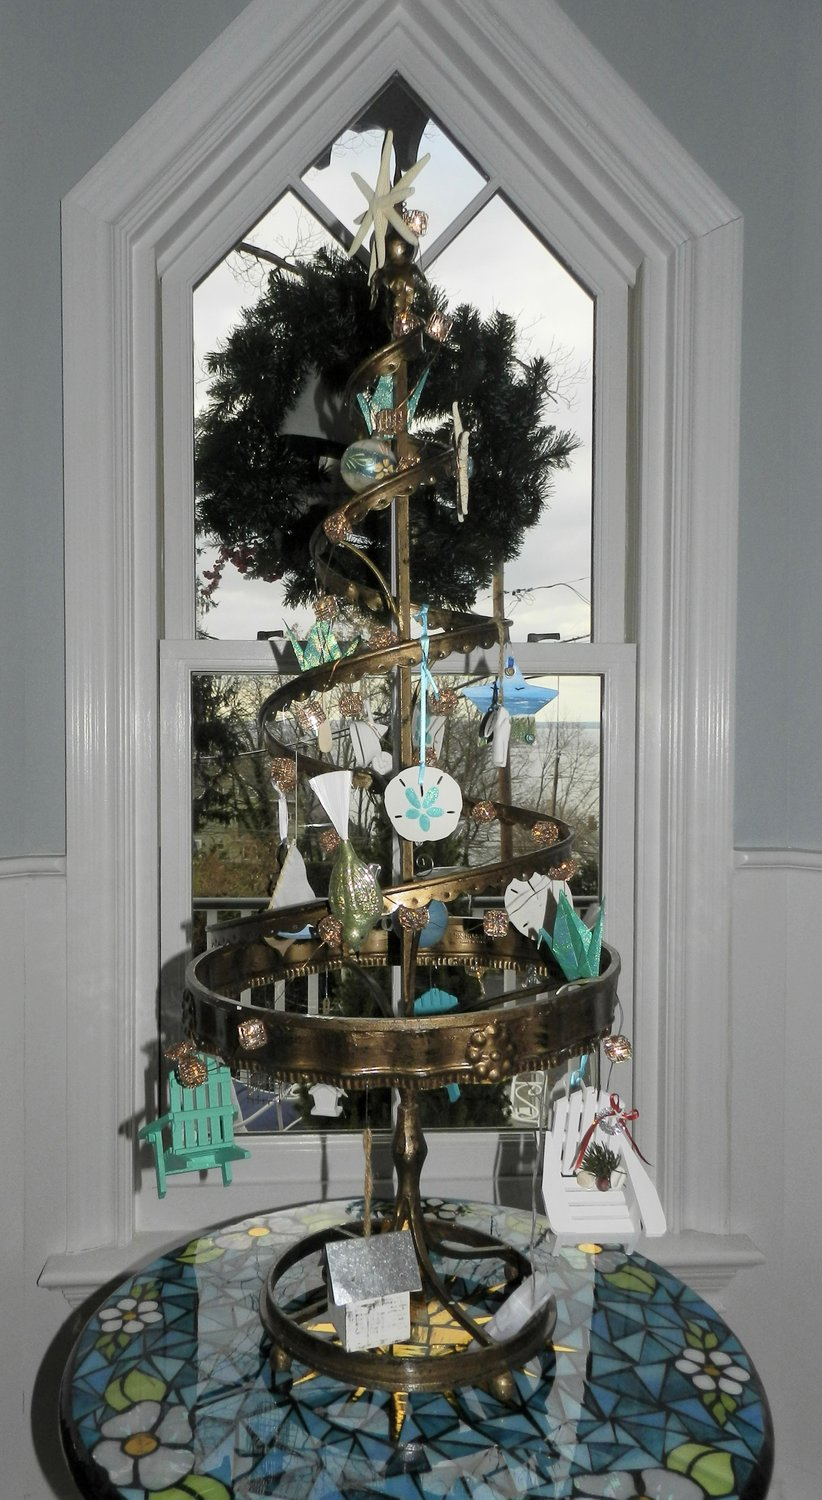 In Jane McGilloway's seaside cottage, a bronze Christmas tree is dressed up with seashells, beach chairs and starfish.